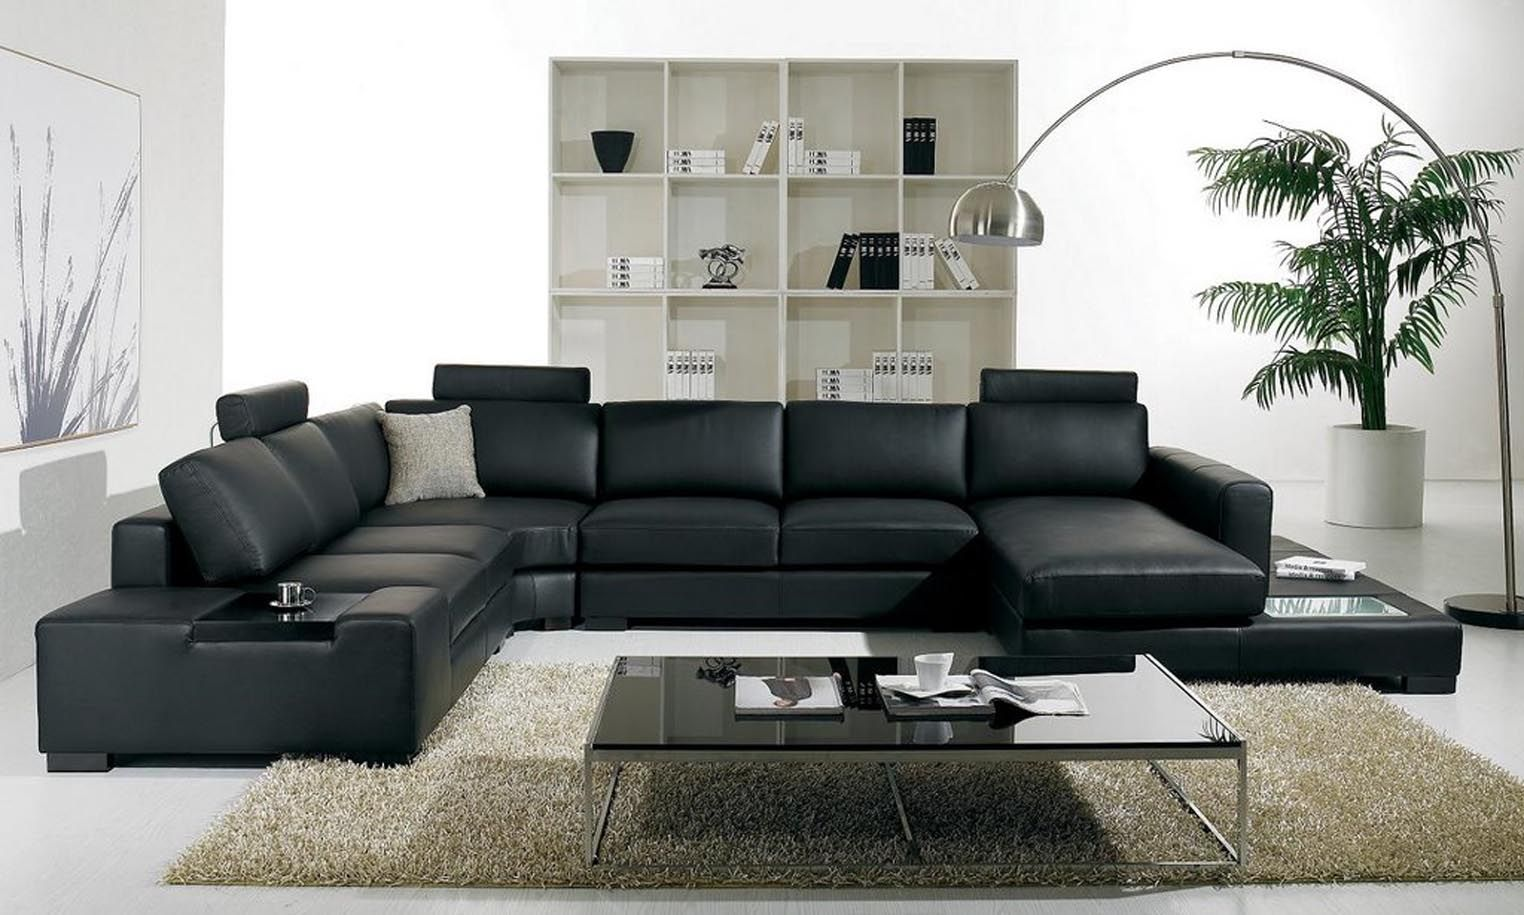 black living room furniture set. Comfortable black leather sectional sofa  The Versatility and Allure of Leather Seating